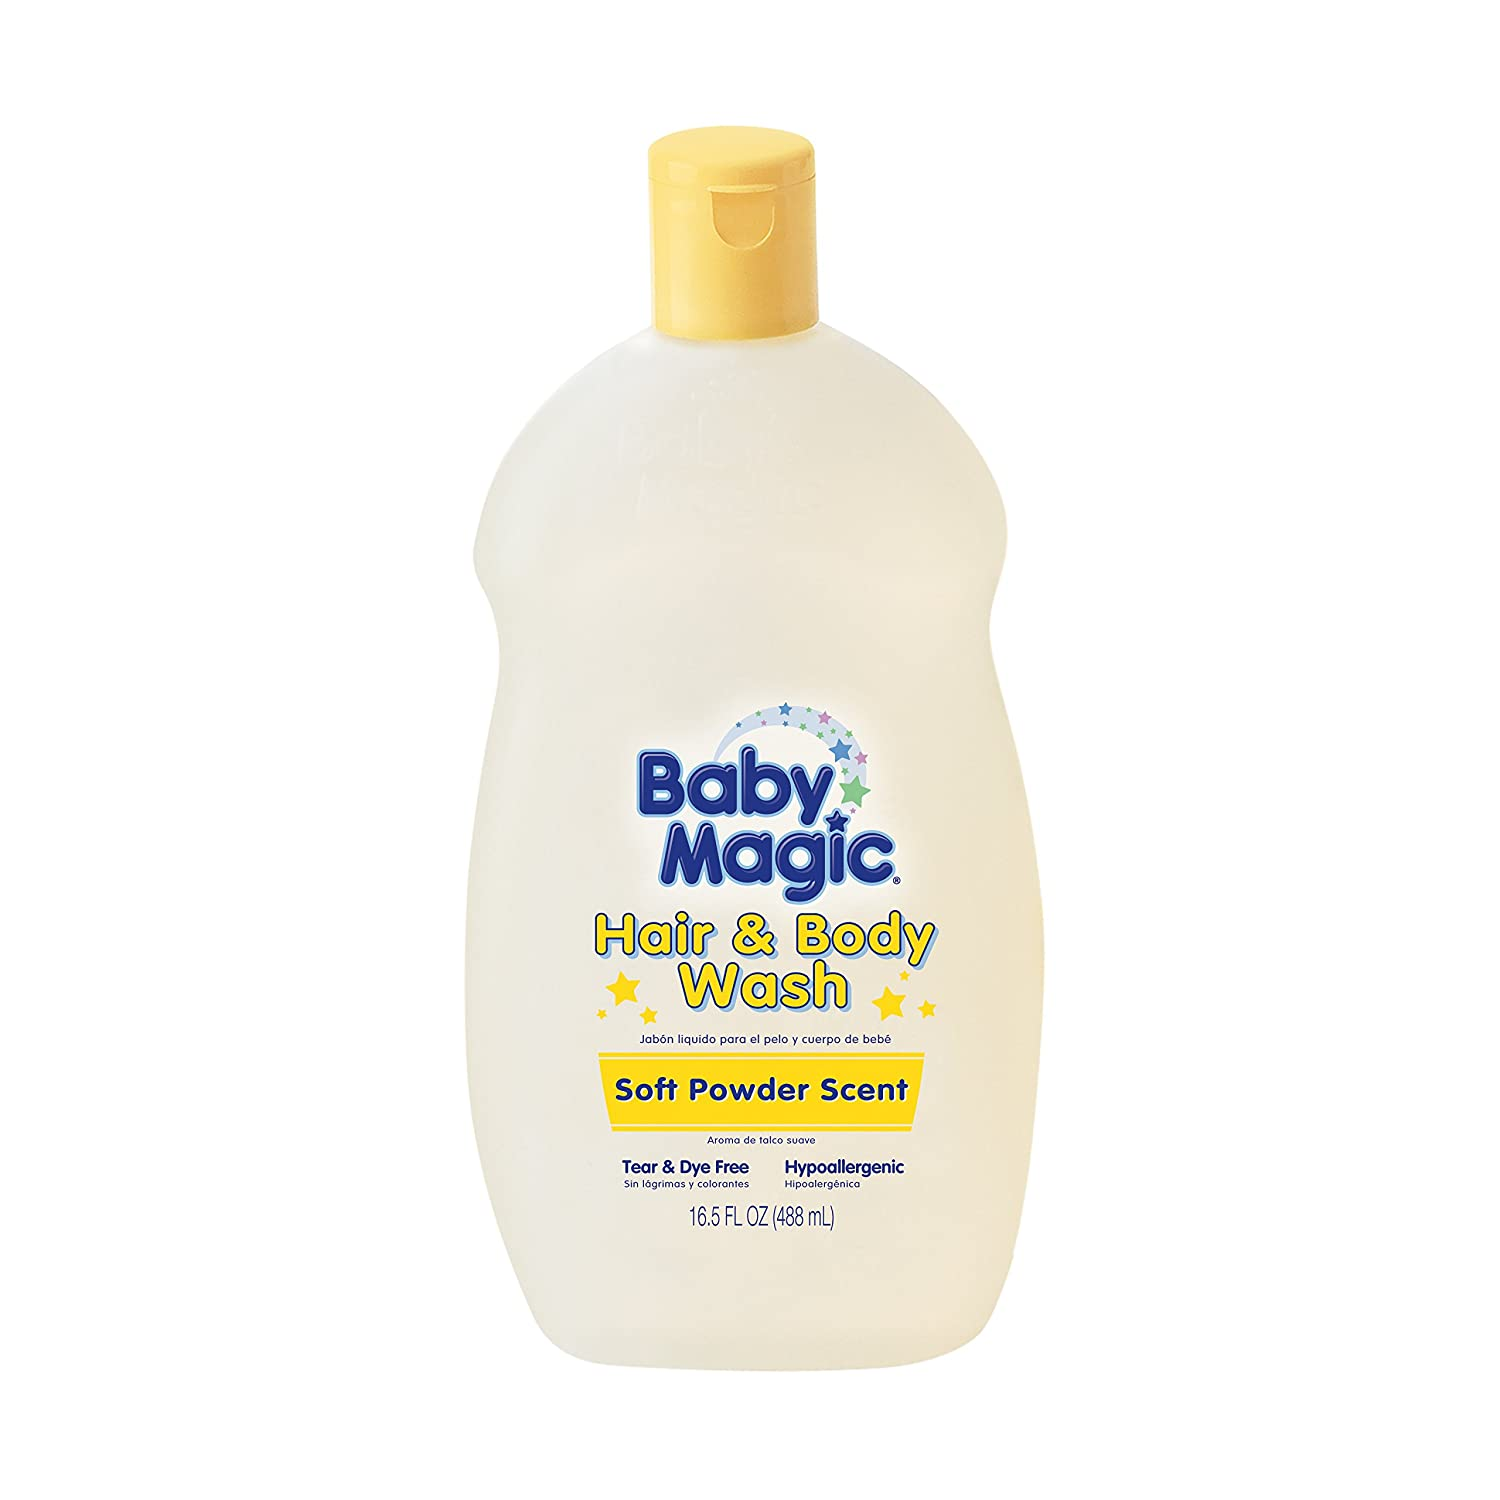 Baby Magic Hair And Body Wash 16.5oz Soft Powder Scent (6 Pack) 705005